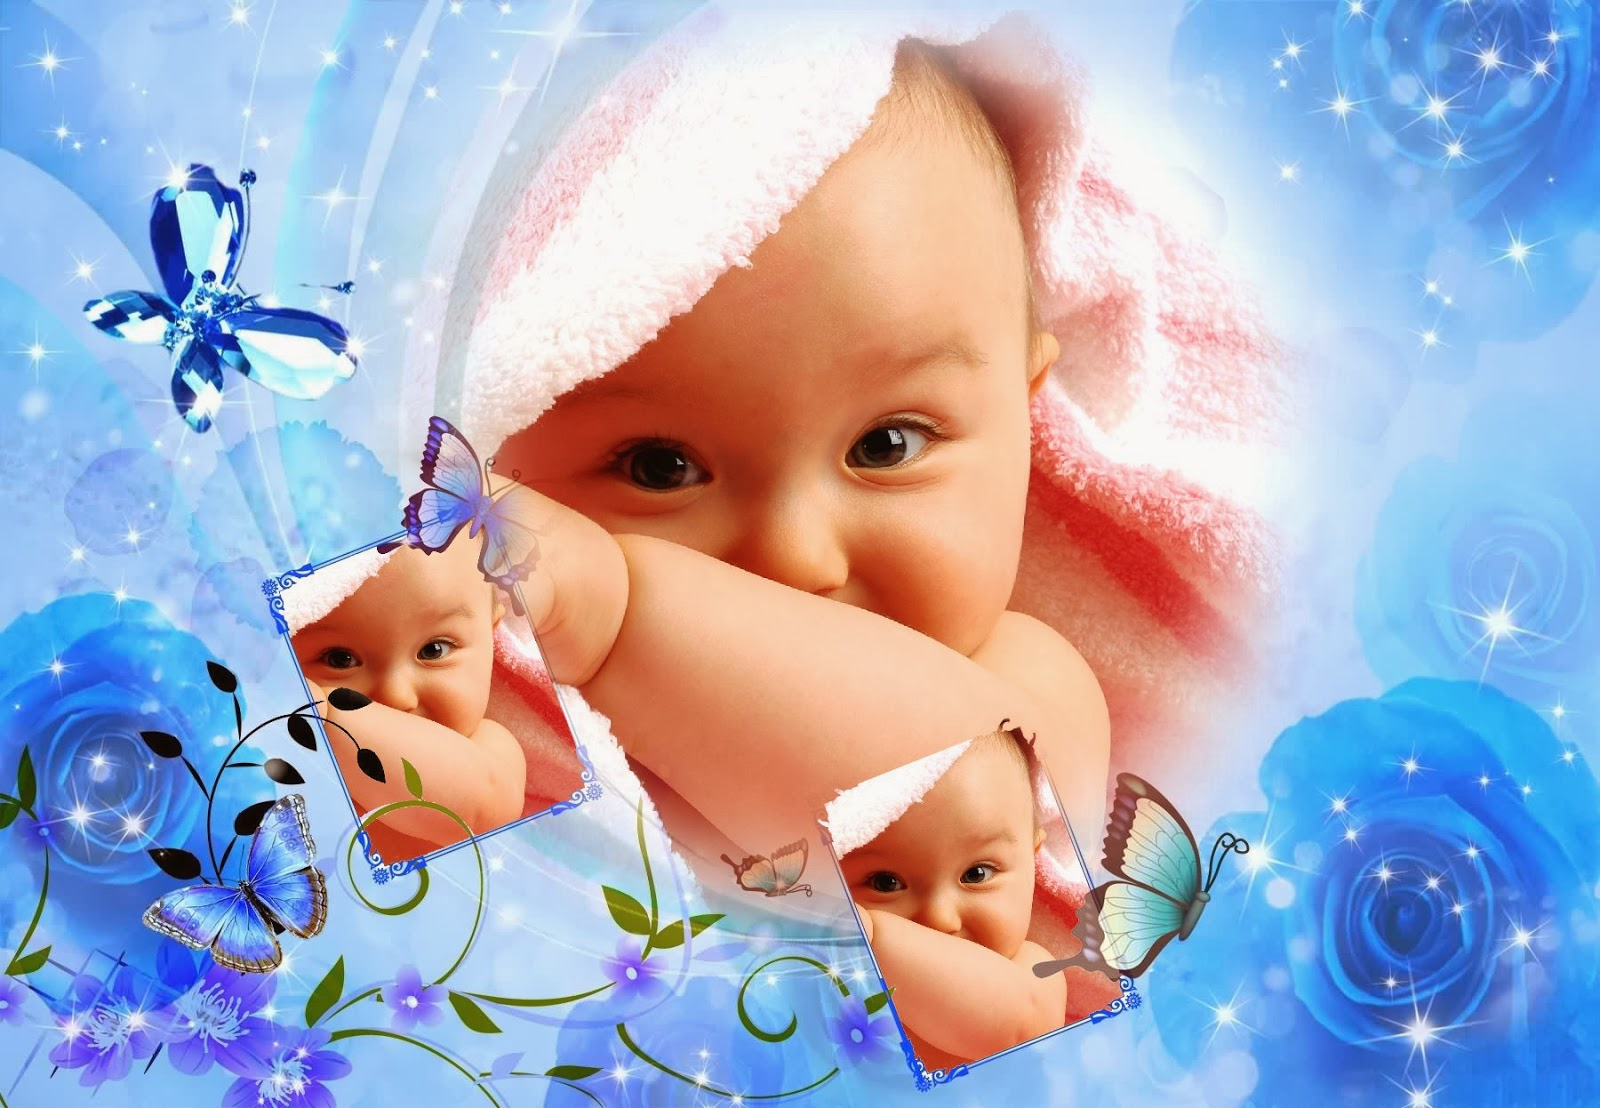 Cute Baby Images Free Download For Mobile: Cute Babies HD Wallpapers